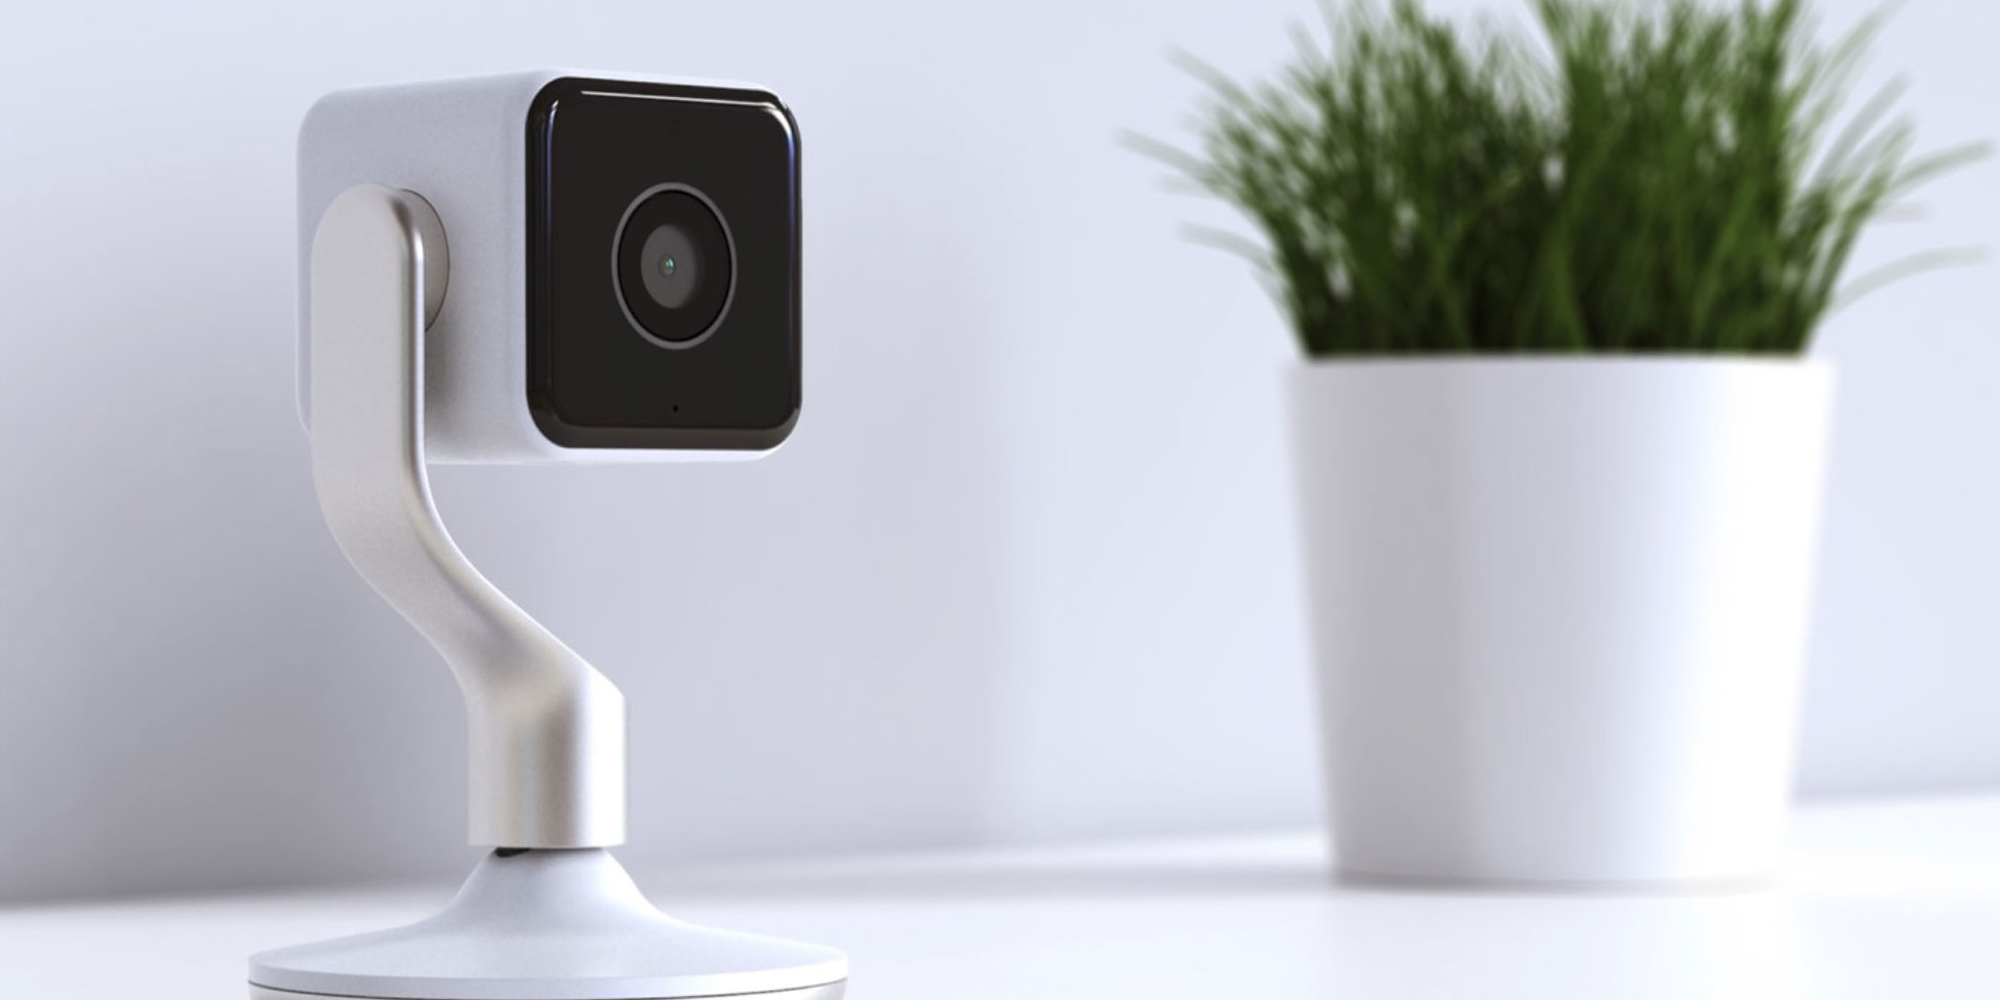 Hive's latest battery-powered View smart home camera sports an elegant design and more